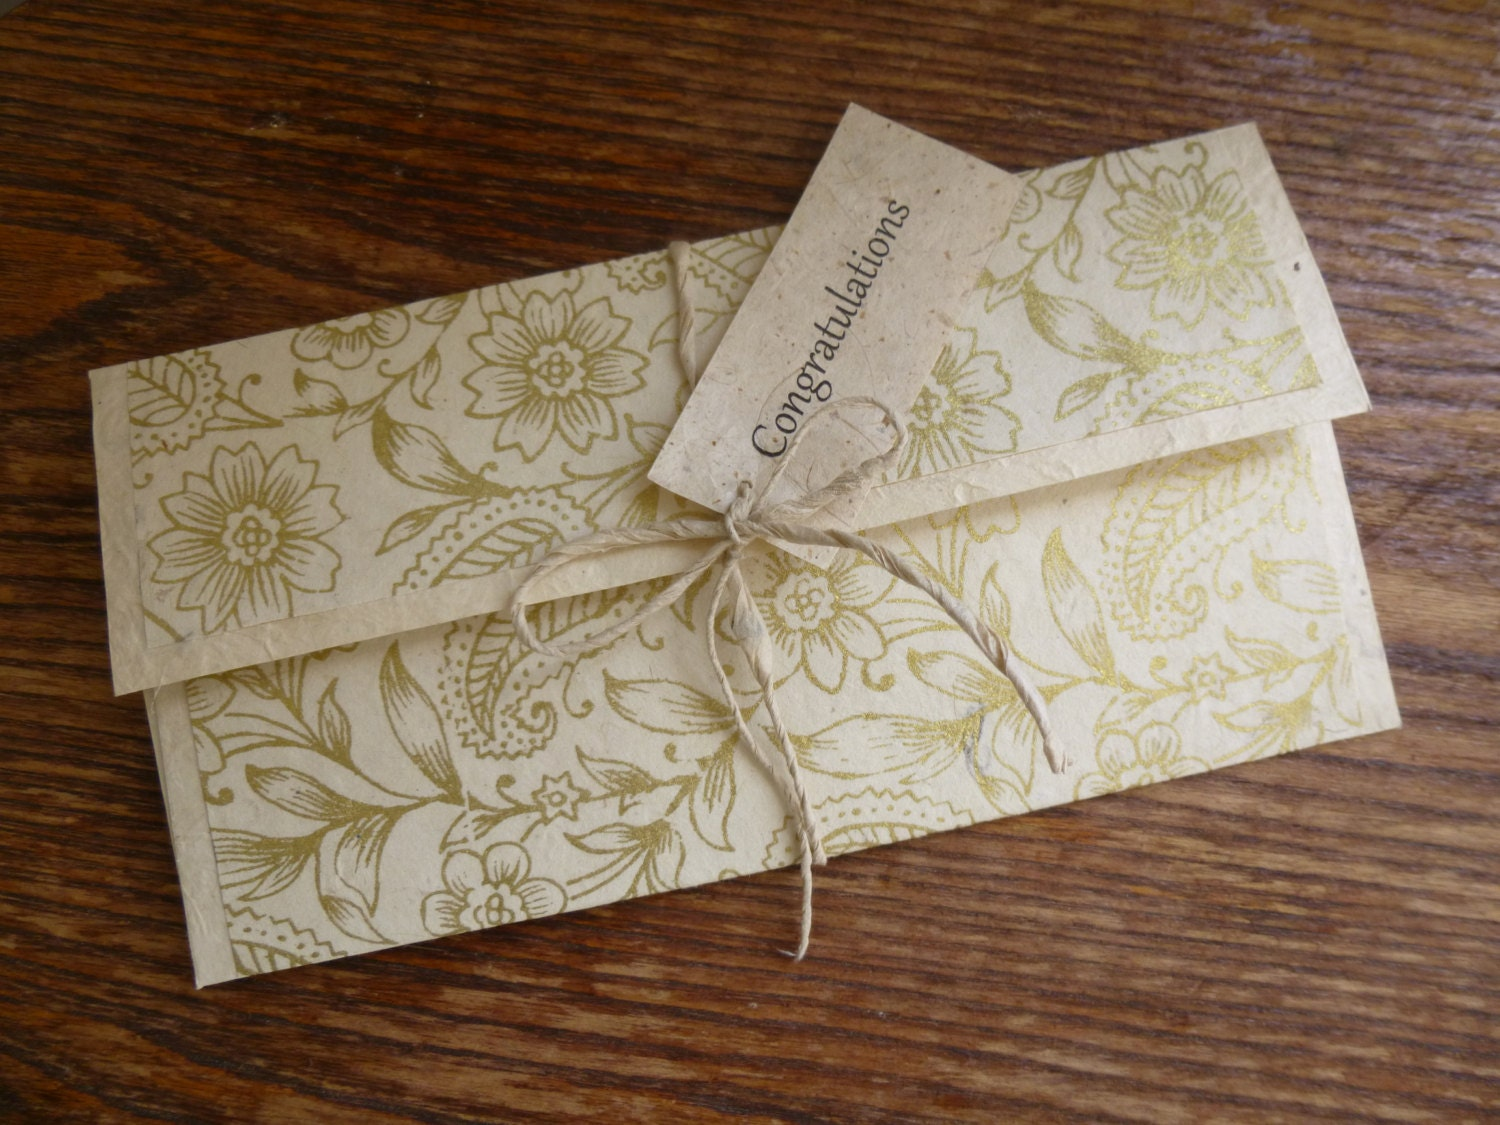 Personalised Wedding Gifts Voucher : Gift Voucher Sleeve, Gift Car Holder, Wedding Gift, One Personalised ...